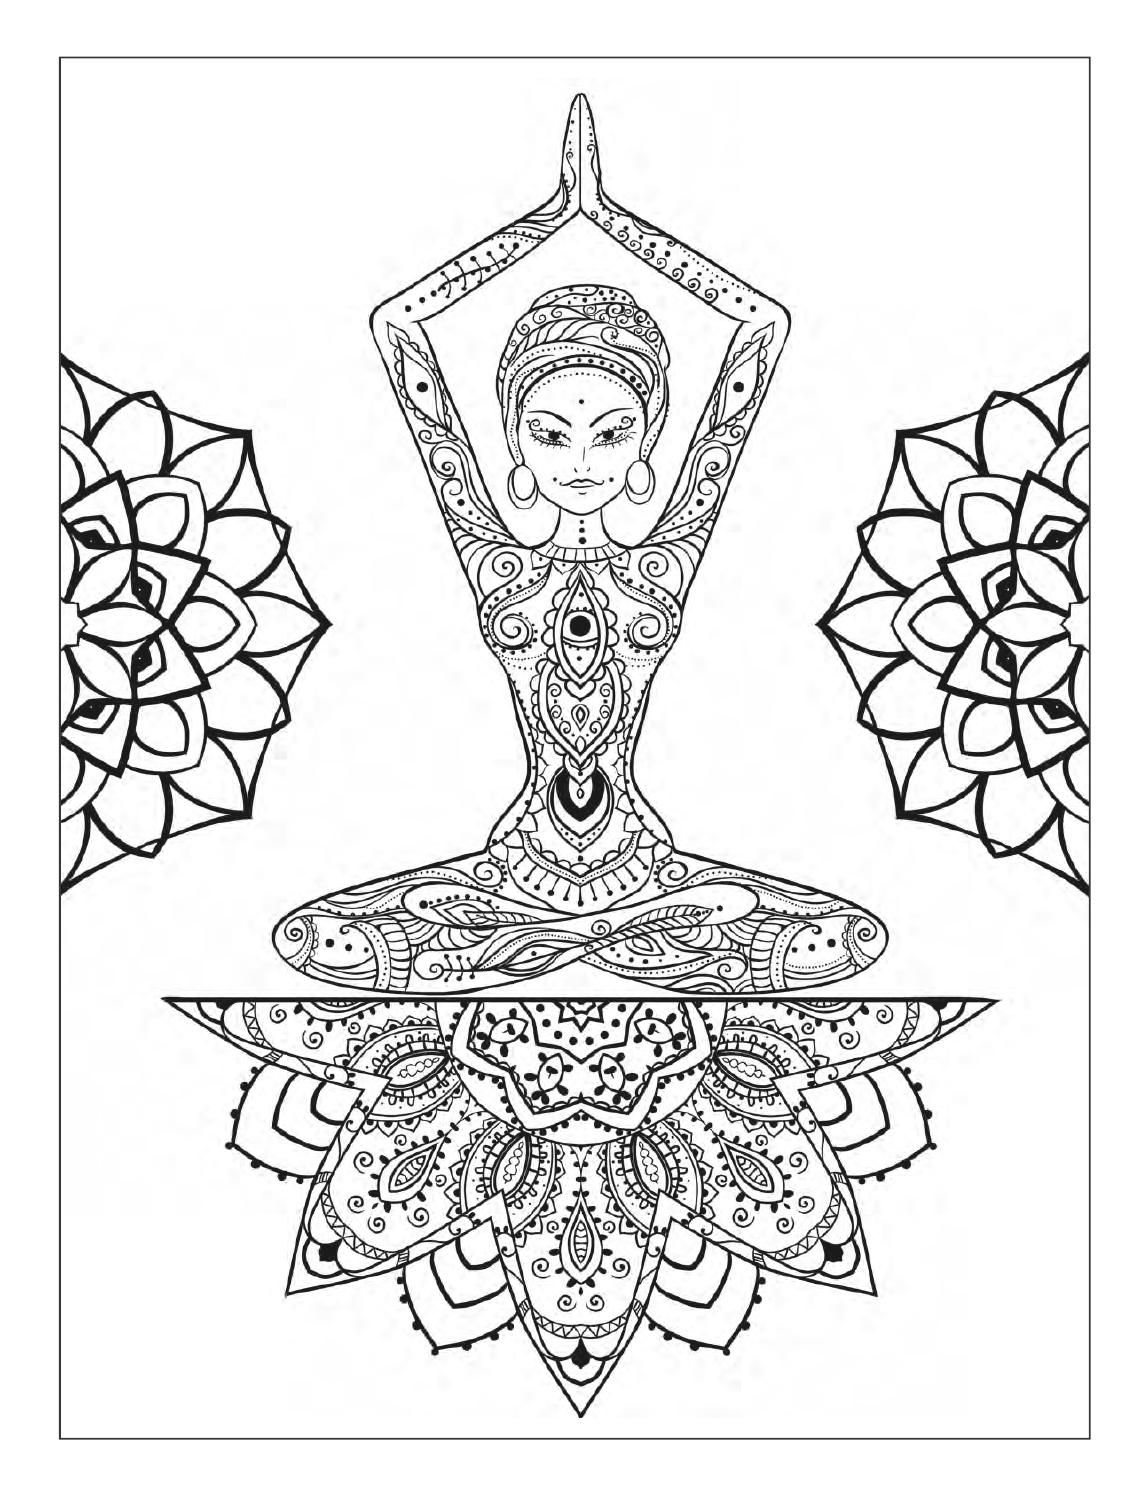 1147x1496 Yoga Meditation Coloring Book For Adults With Yoga Poses